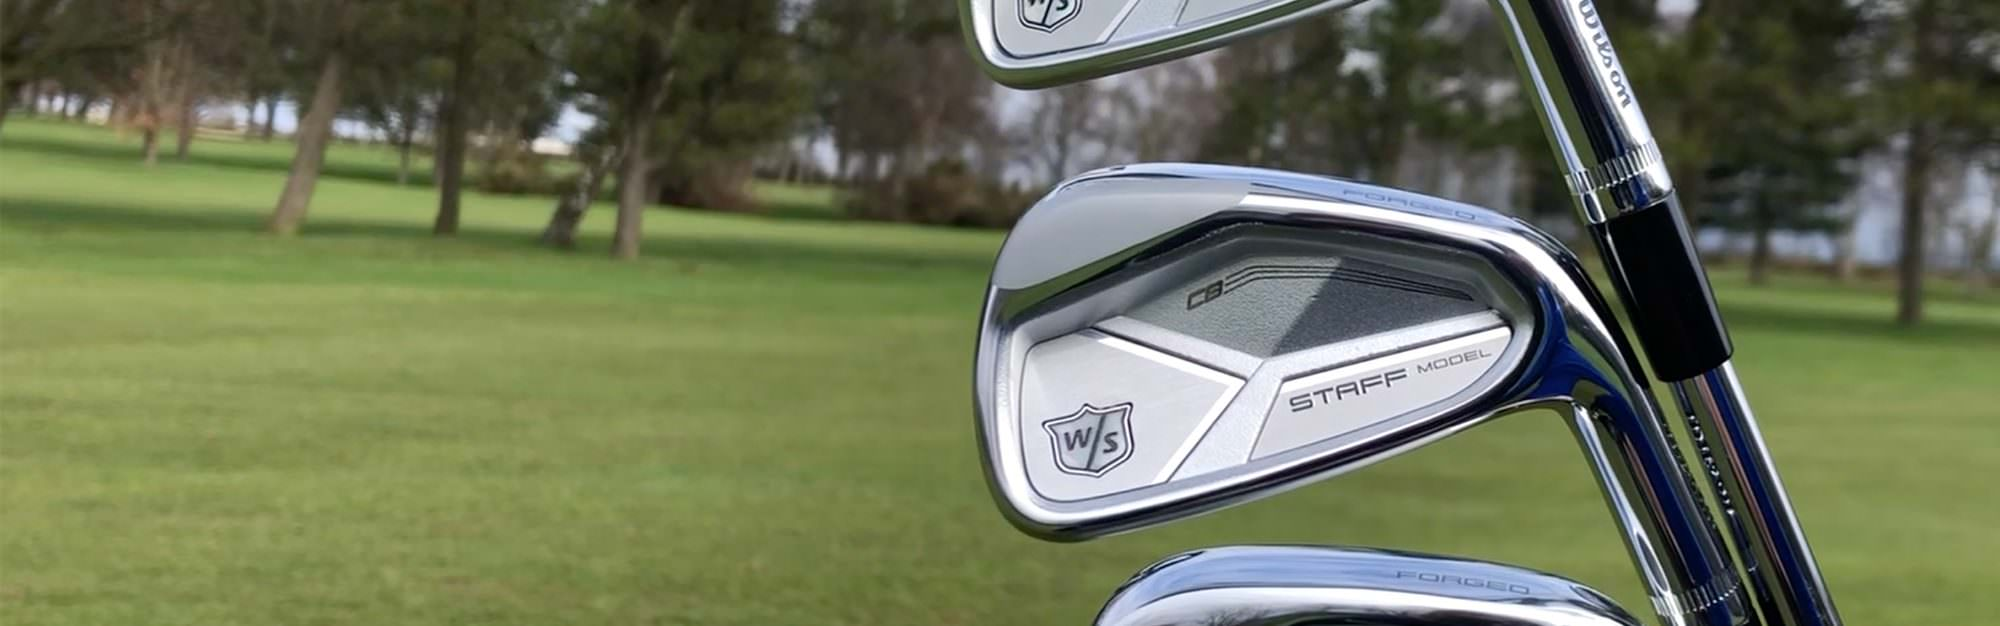 Wilson CB irons review: A tour player model - but could they work for you?